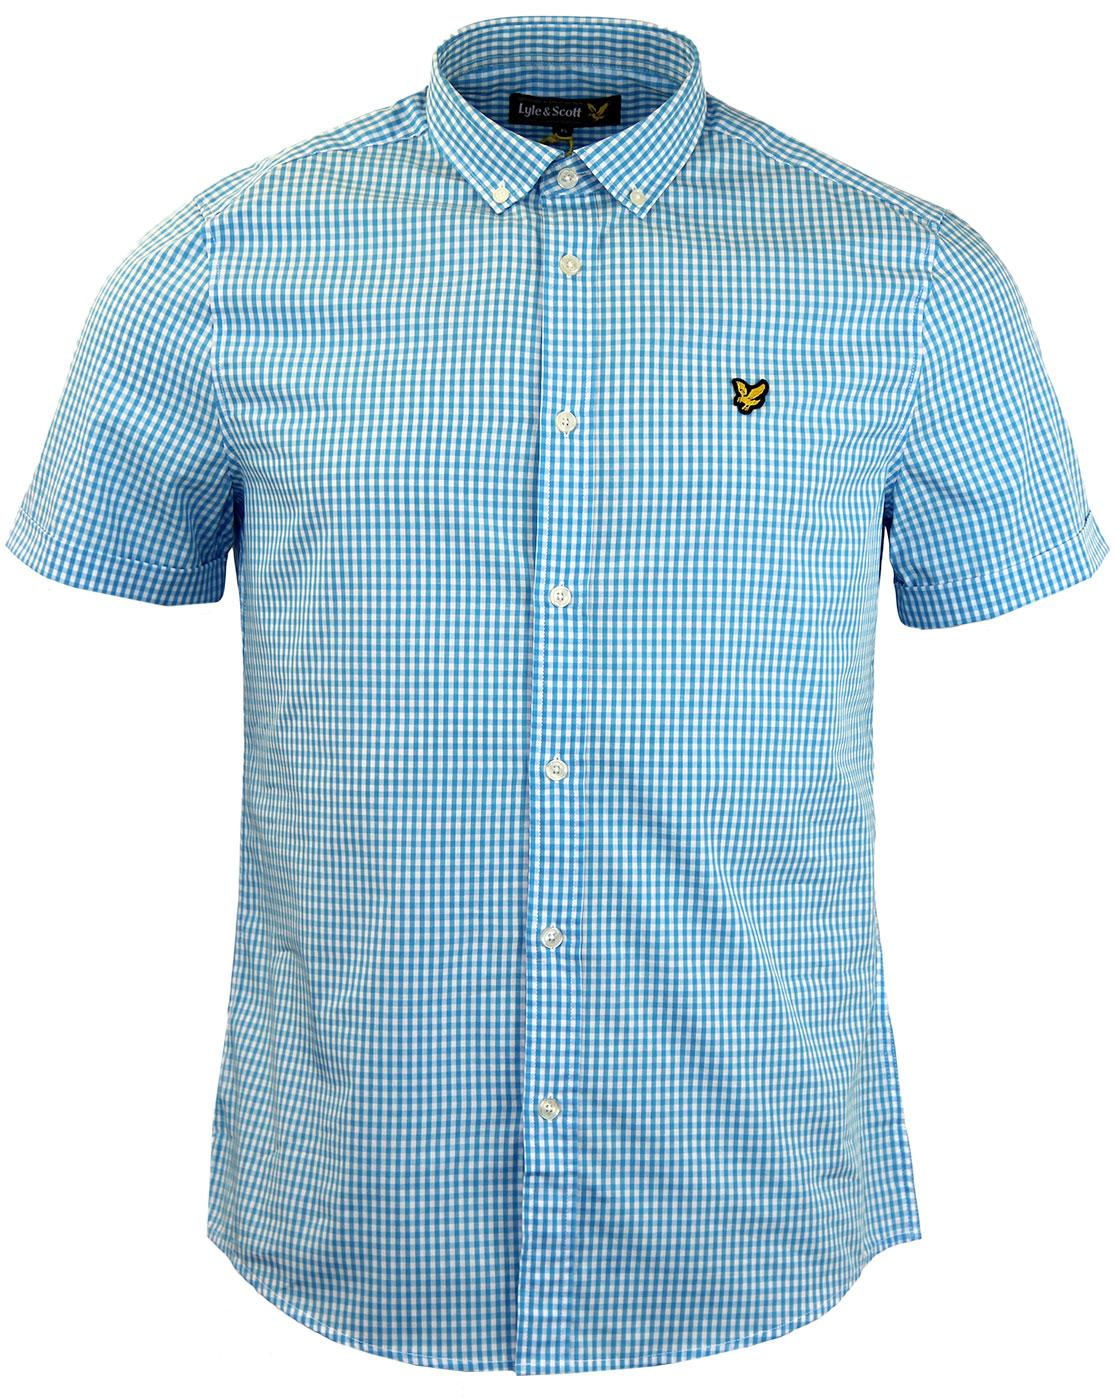 LYLE & SCOTT SS Gingham Check Button Down Shirt